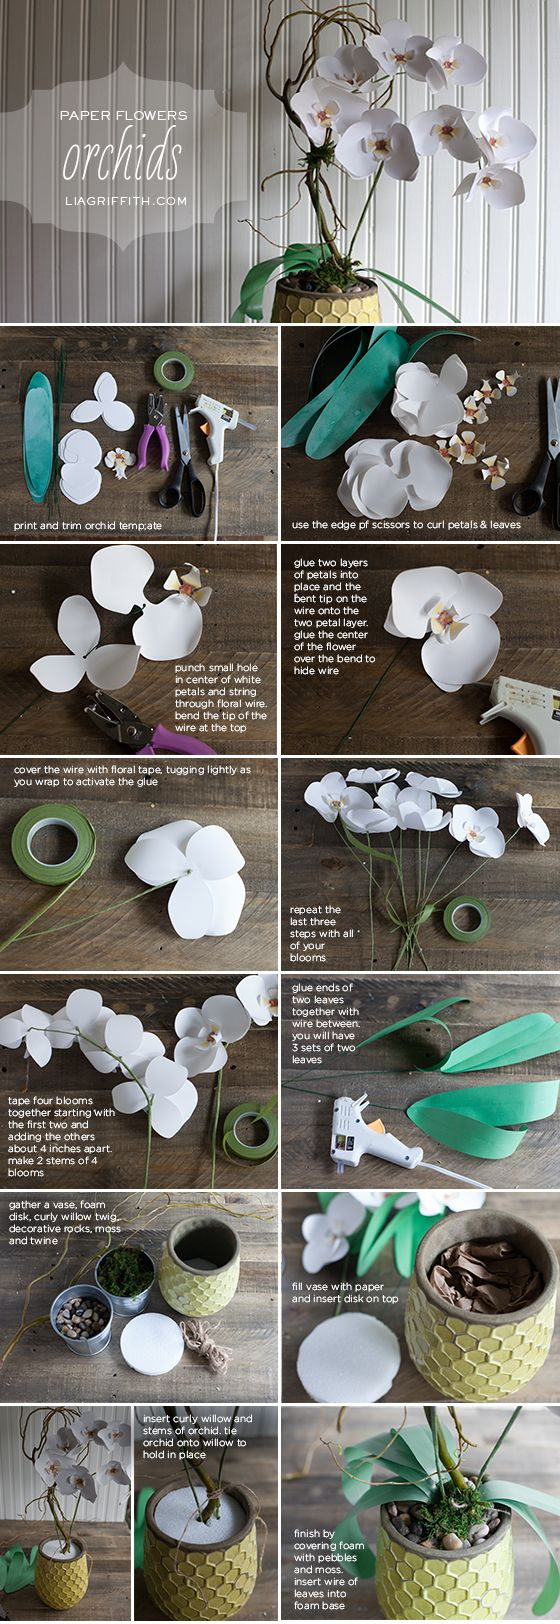 Make a Gorgeous Paper Orchid Plant